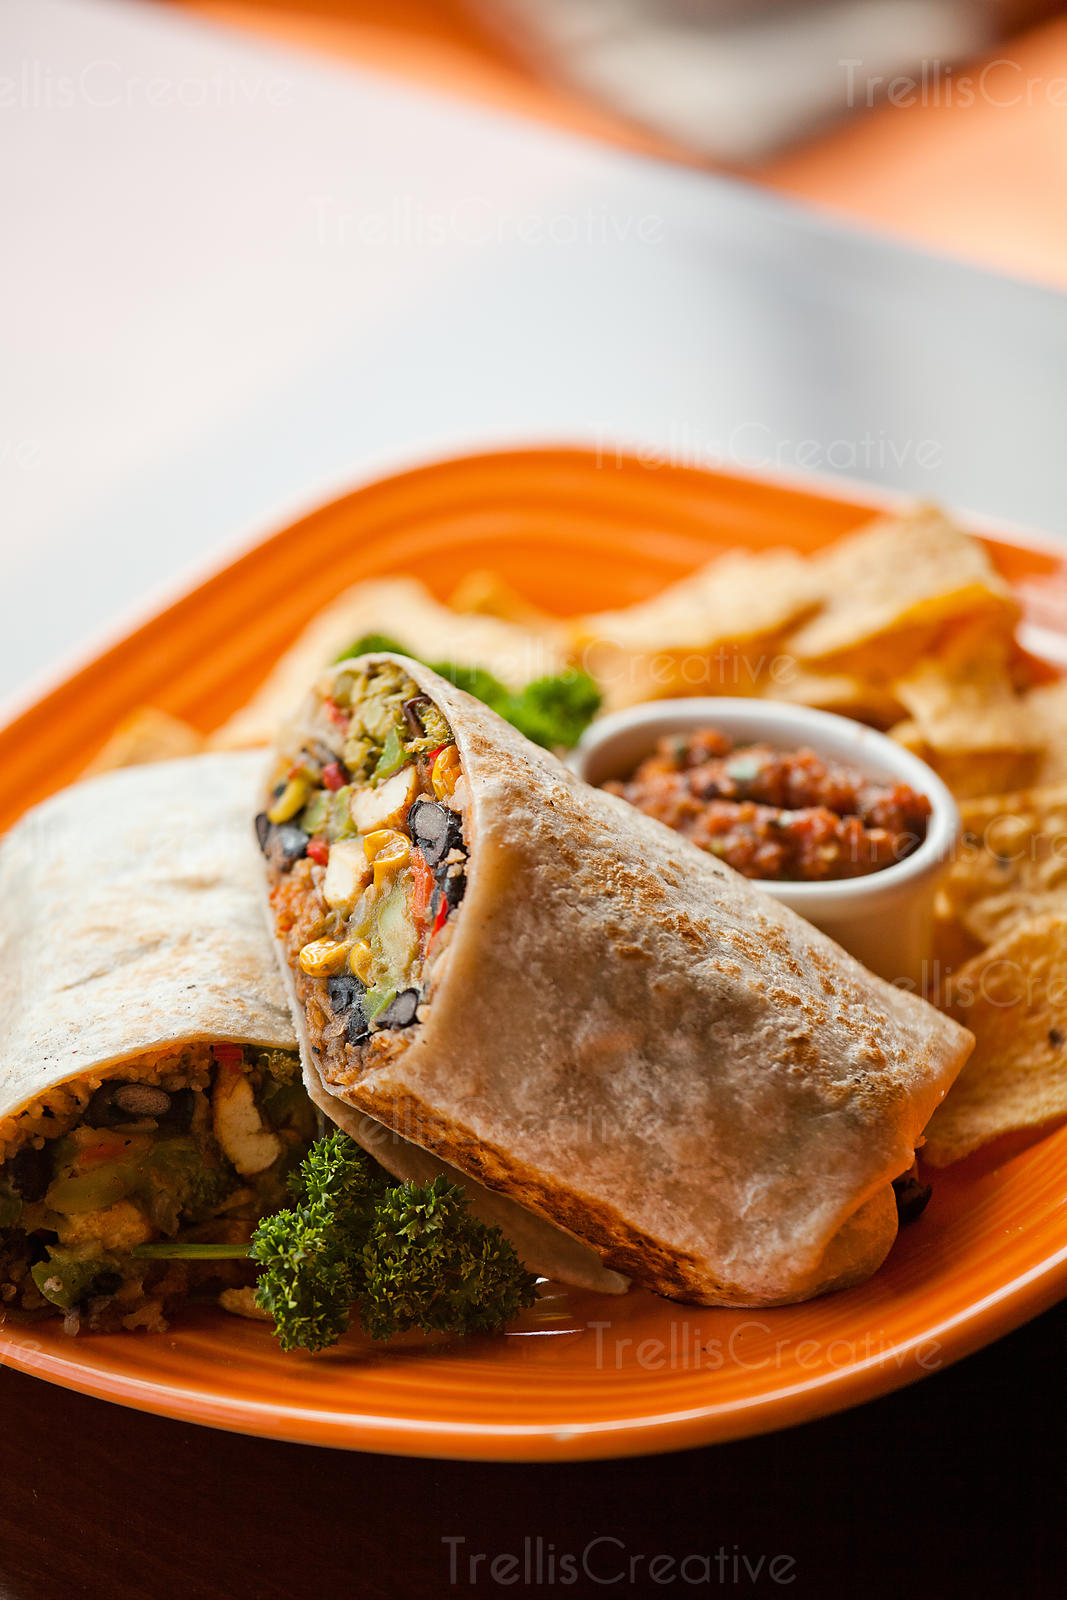 A bean and chicken burrito served with tortilla chips and salsa